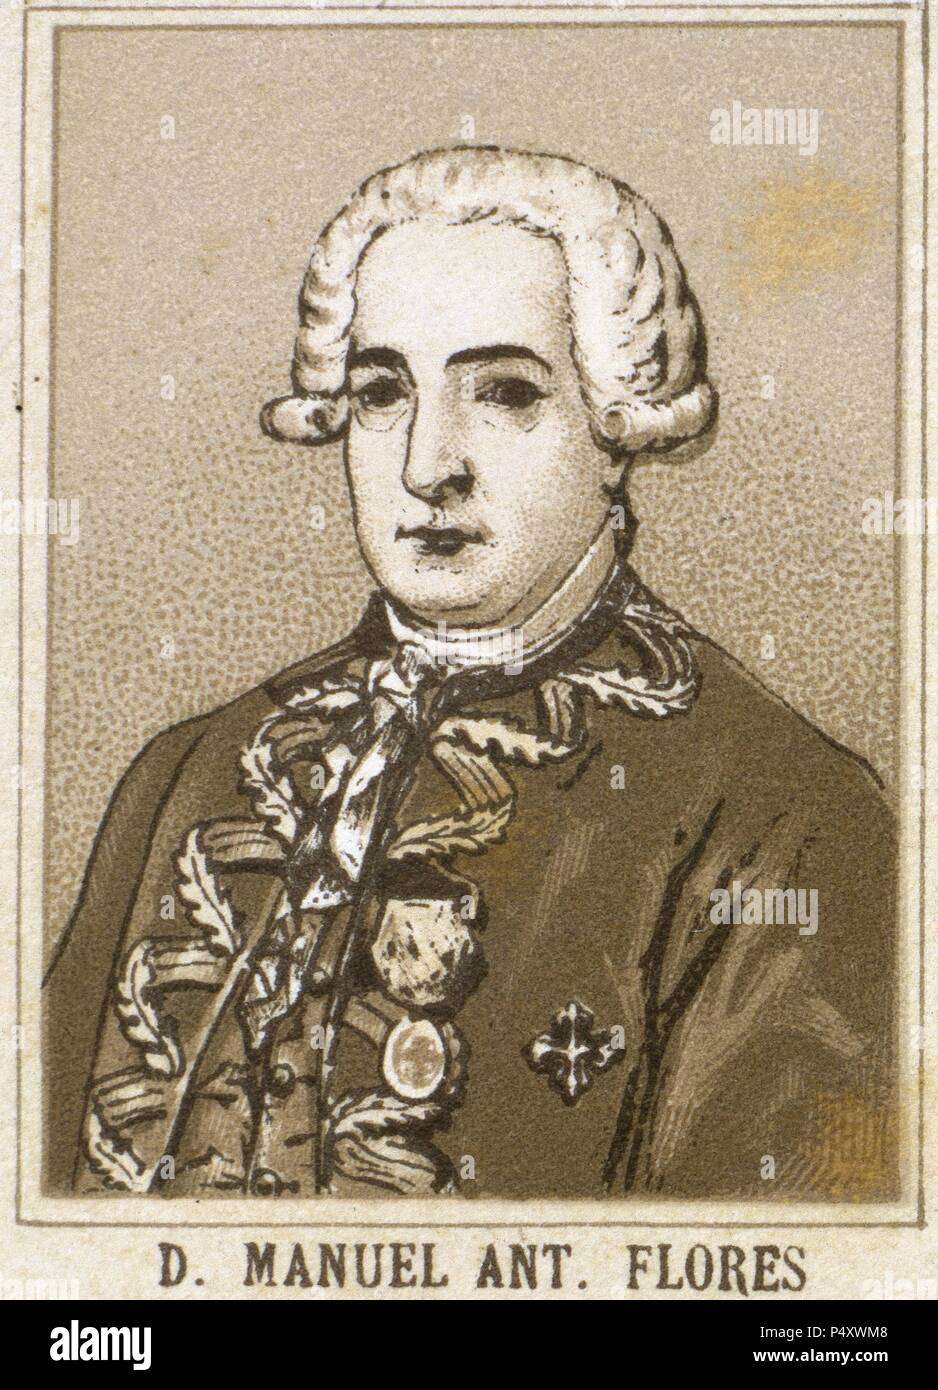 Manuel Antonio Flores (1722-1799). General in the Spanish navy and viceroy  of New Granada (1776-1781) and New Spain (1787-1789). Engraving.